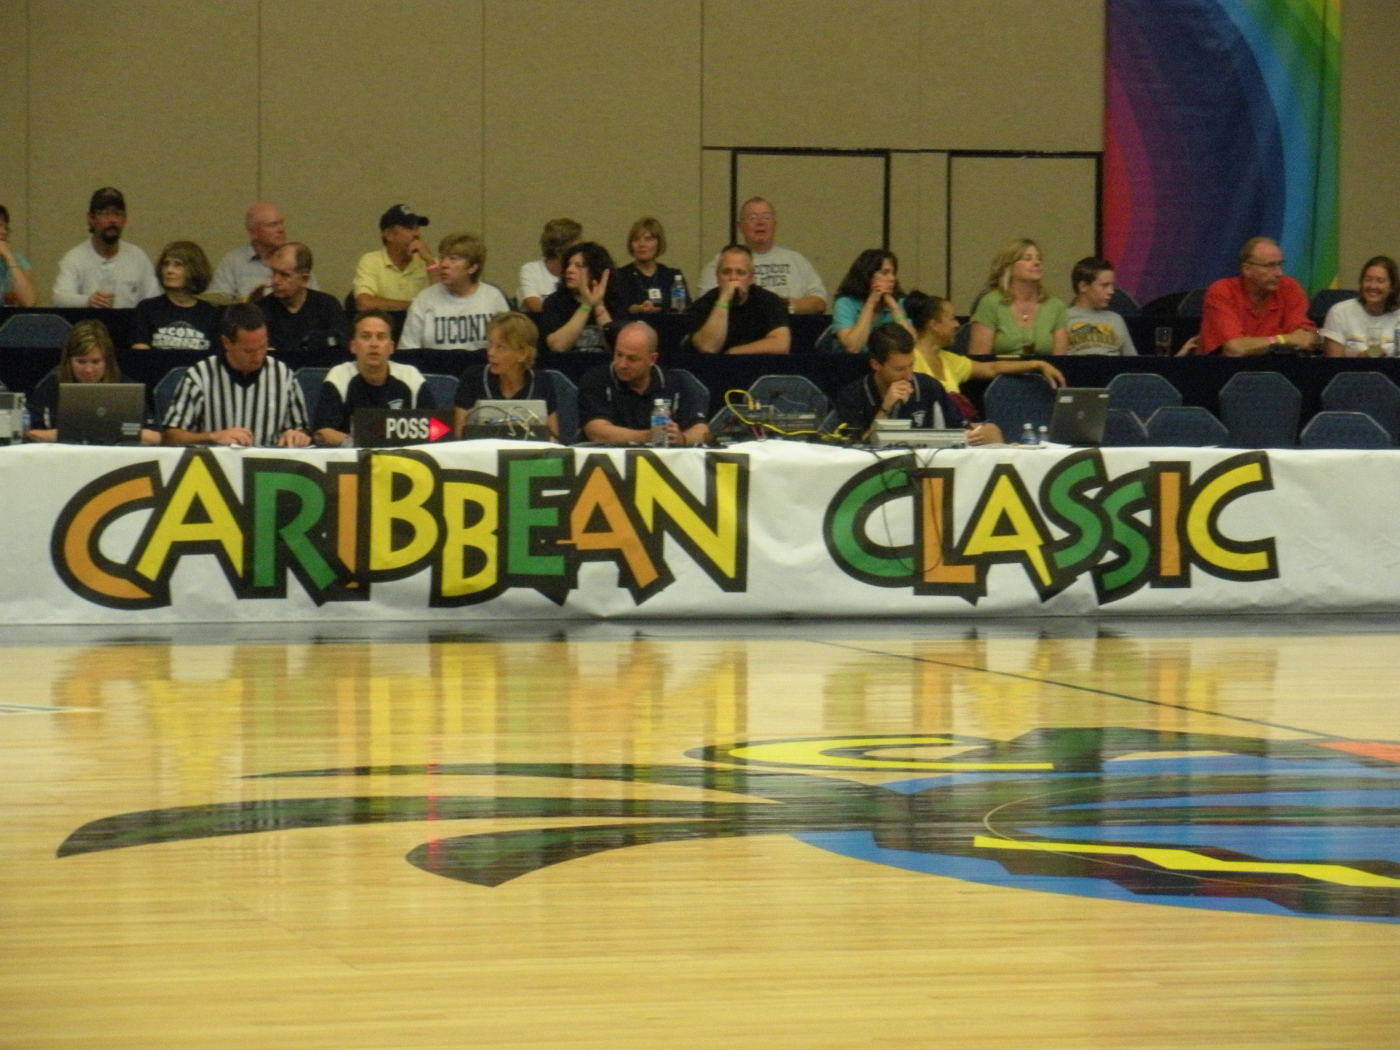 The Caribbean Classic is being held at the Moon Palace Resort.